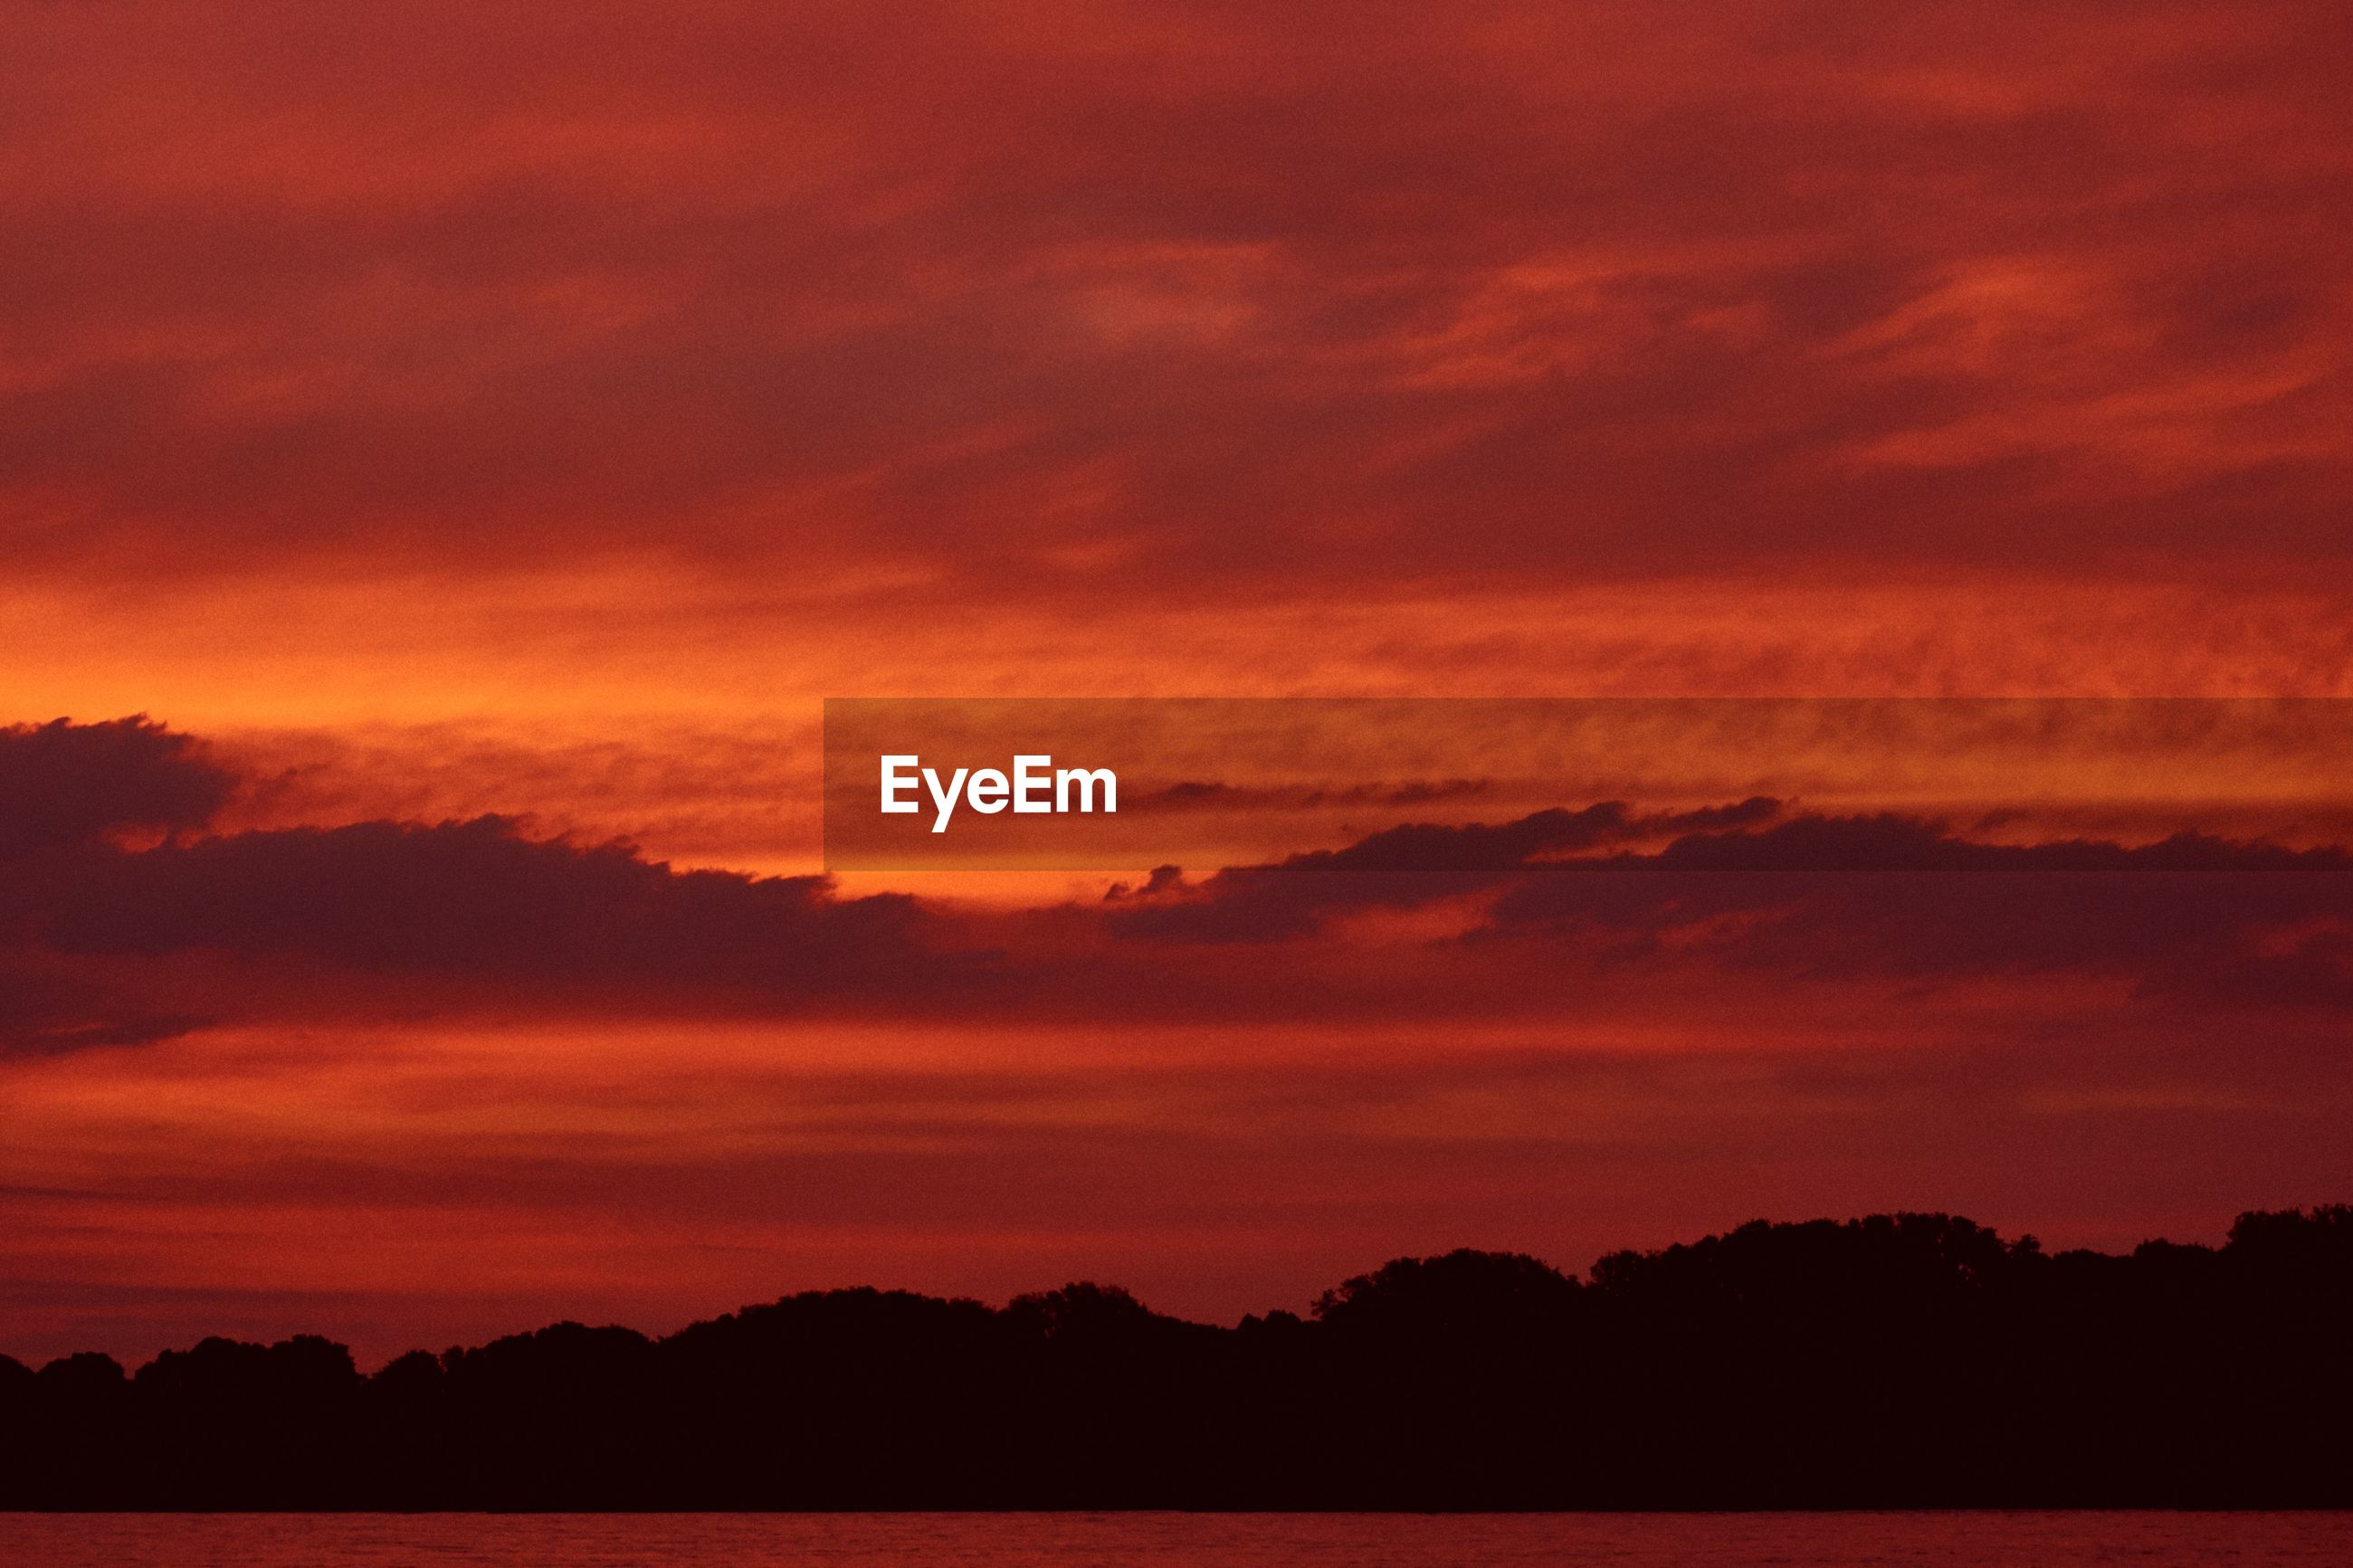 SCENIC VIEW OF DRAMATIC SKY OVER SILHOUETTE LANDSCAPE DURING SUNSET